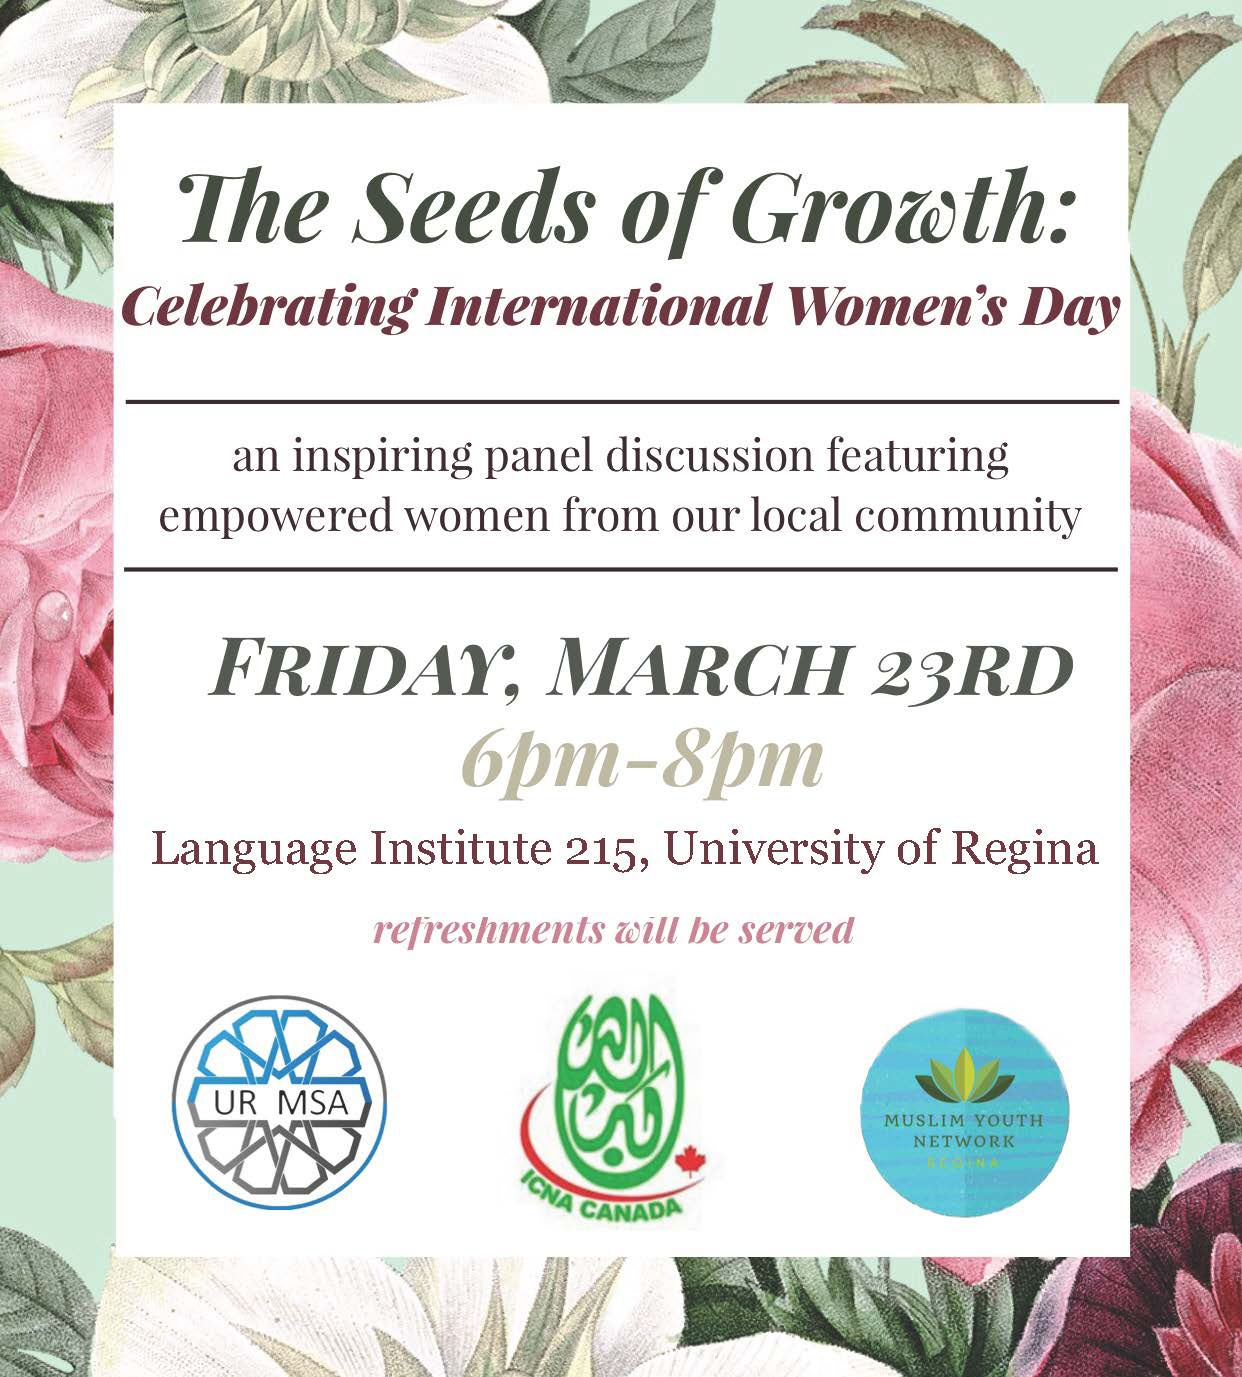 The Seeds of Growth Event celebrating International Women's Day.  A project of the ICNA for empowering Youth - Image 1